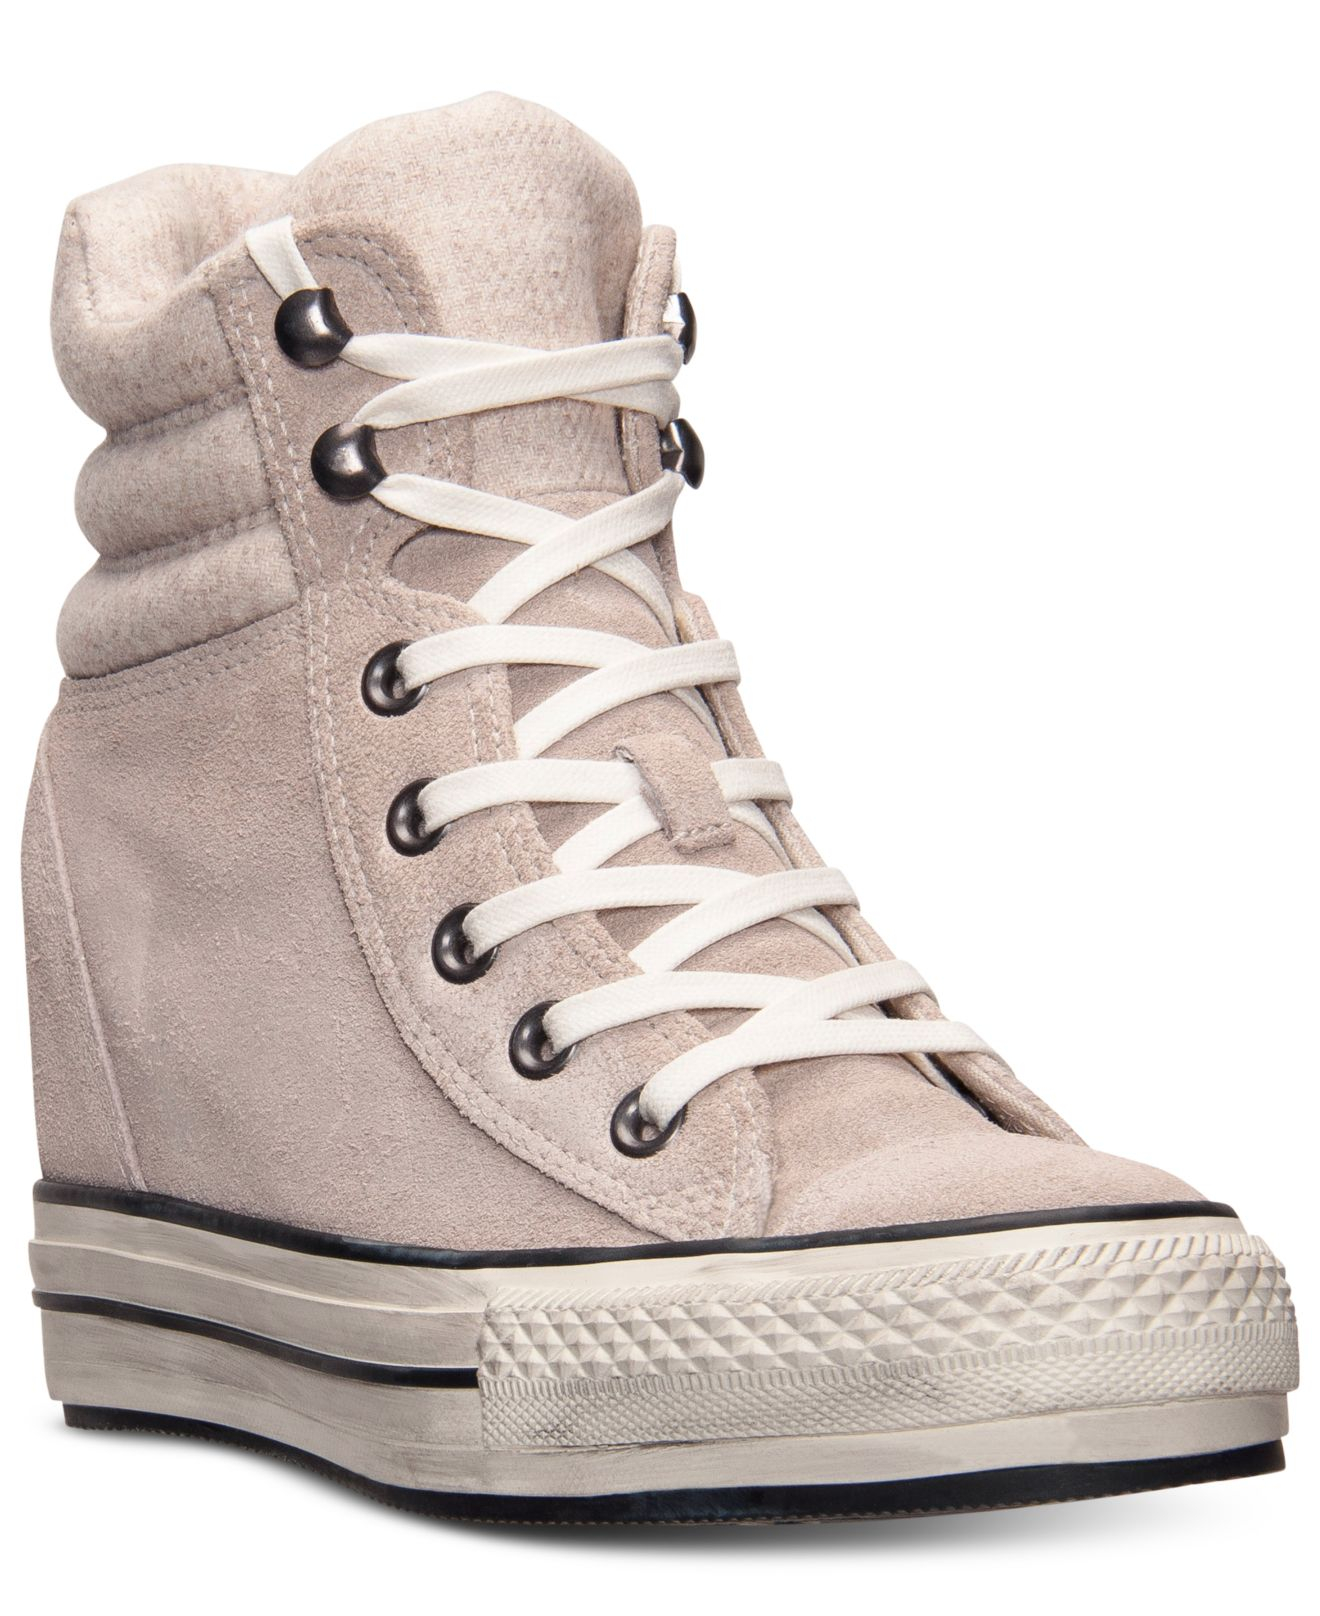 dbaeae41a125 Gallery. Previously sold at  Macy s · Women s Converse Platform ...